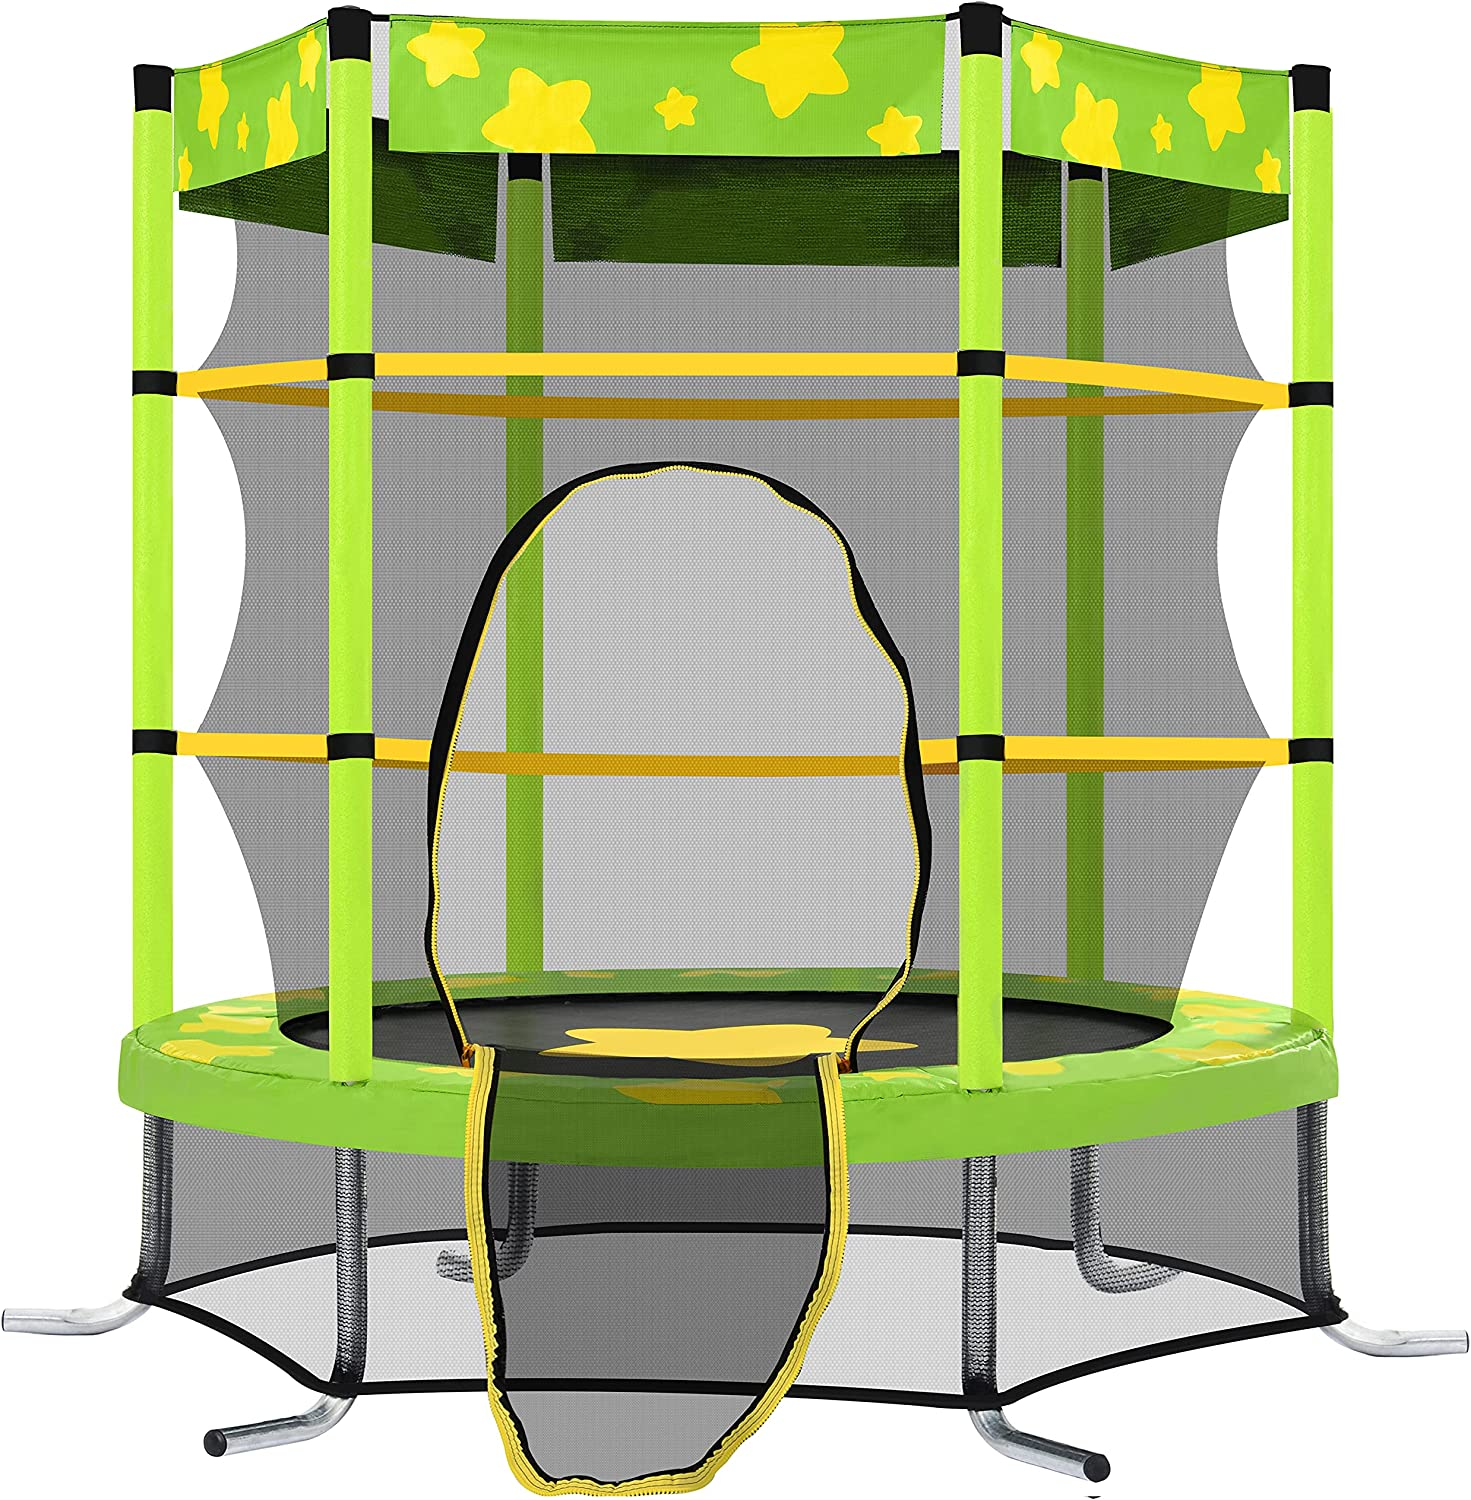 55 Inch Direct stock discount Kids Trampoline with Indoo Safety Very popular! Net Outdoor Enclosure